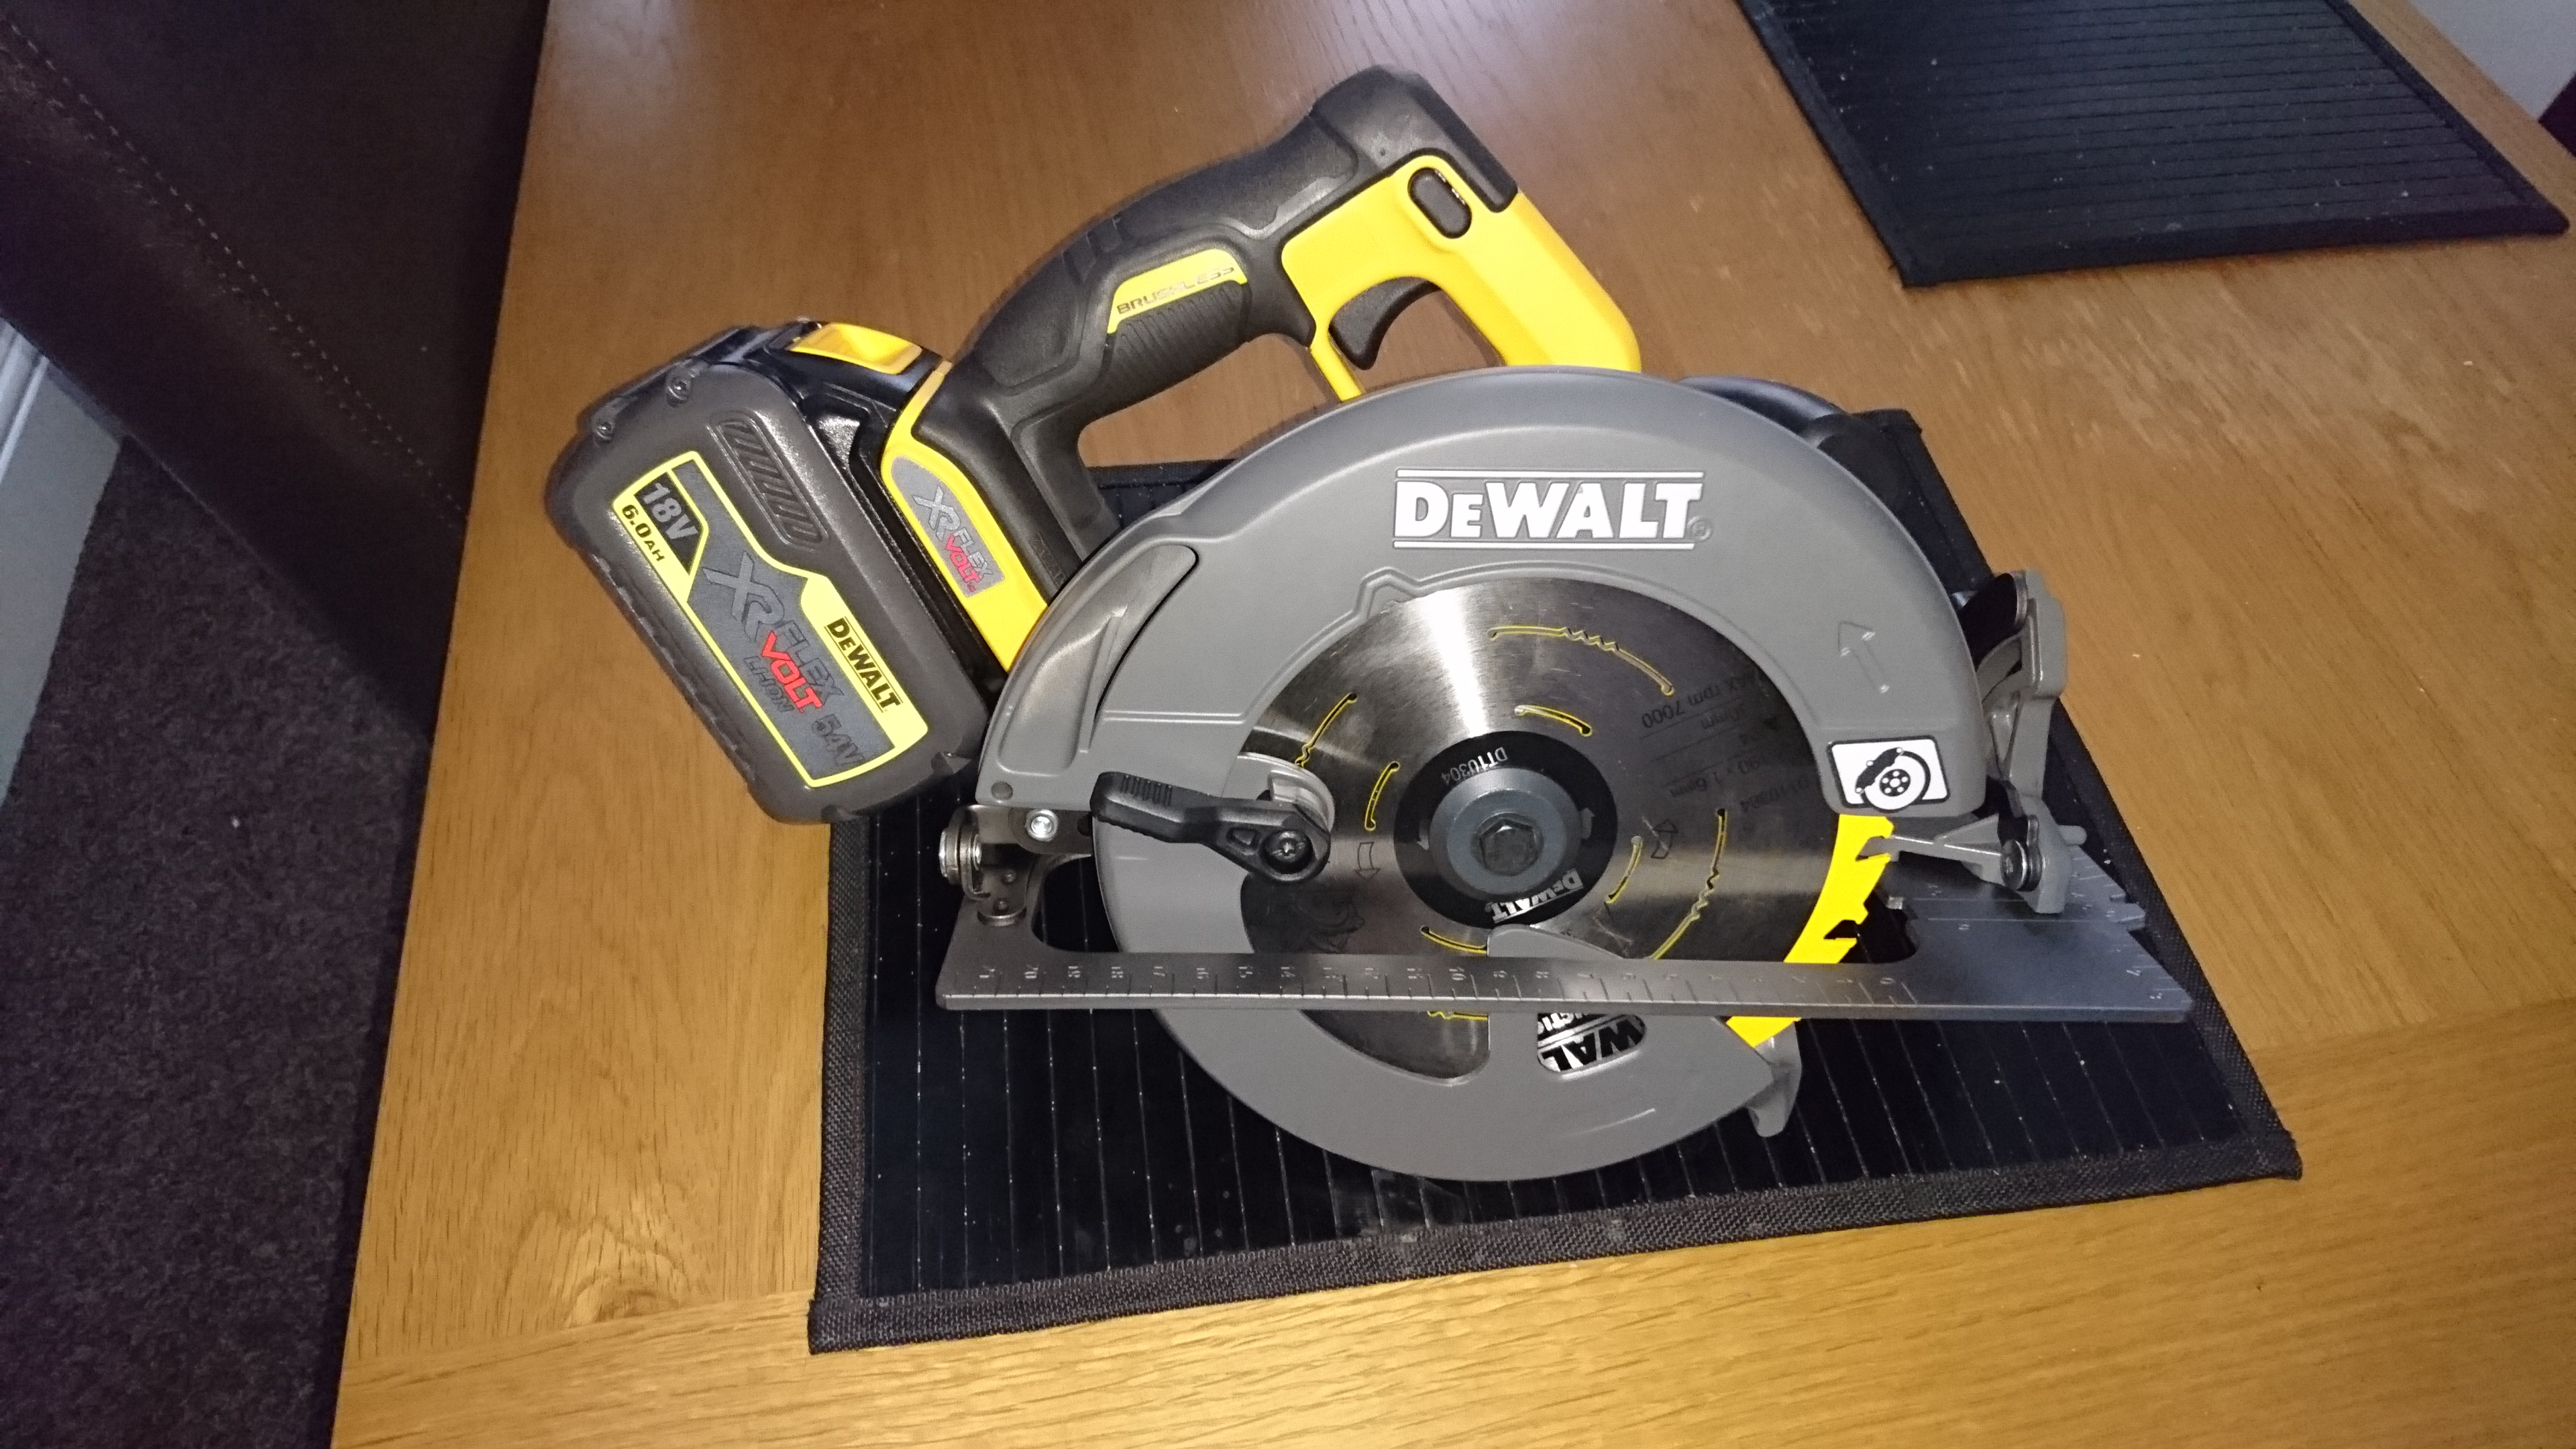 Flexvolt circular saw dewalt power tool forum tools just thought i would share this as i picked it up after work today cant wait to put it through its paces keyboard keysfo Gallery